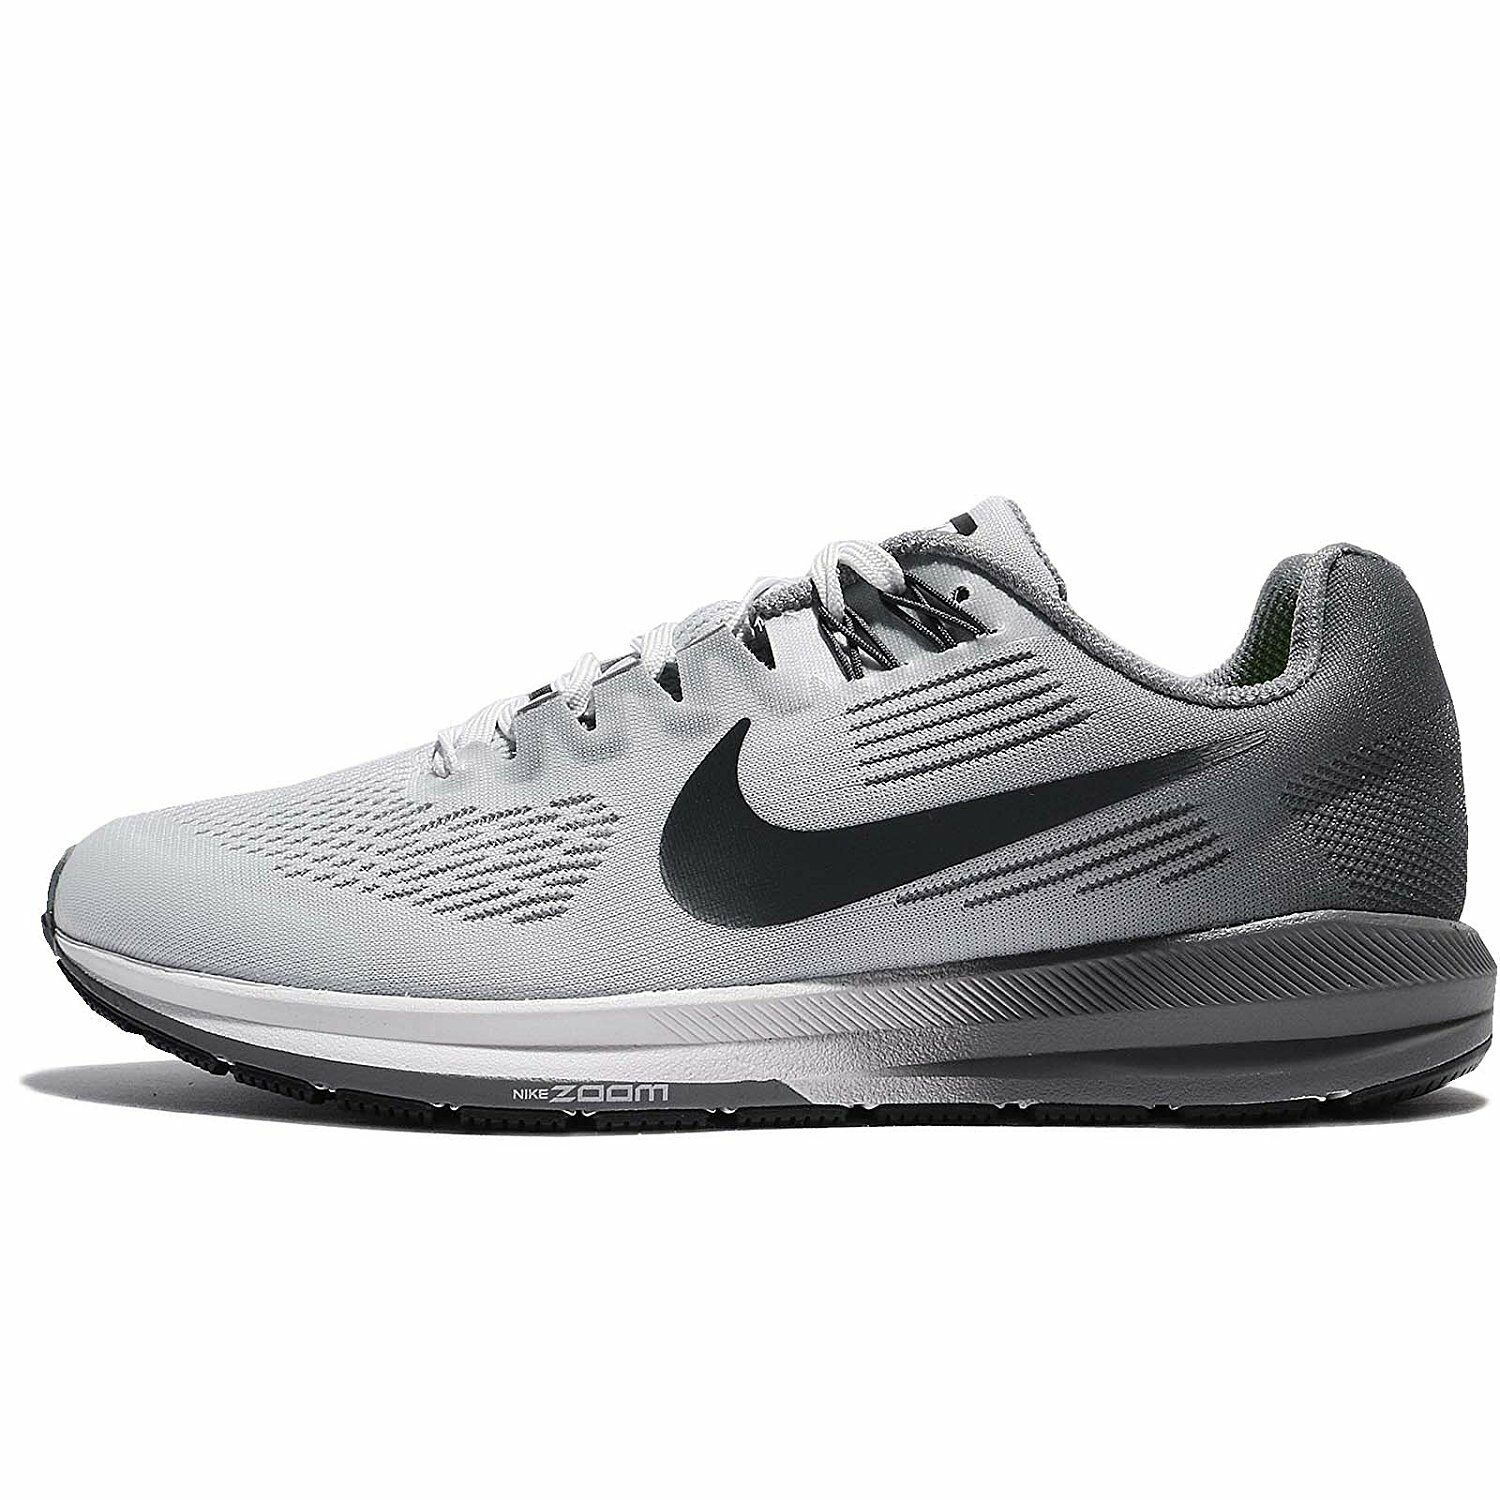 Nike Women's Air Zoom Structure 21 Comfortable Comfortable and good-looking